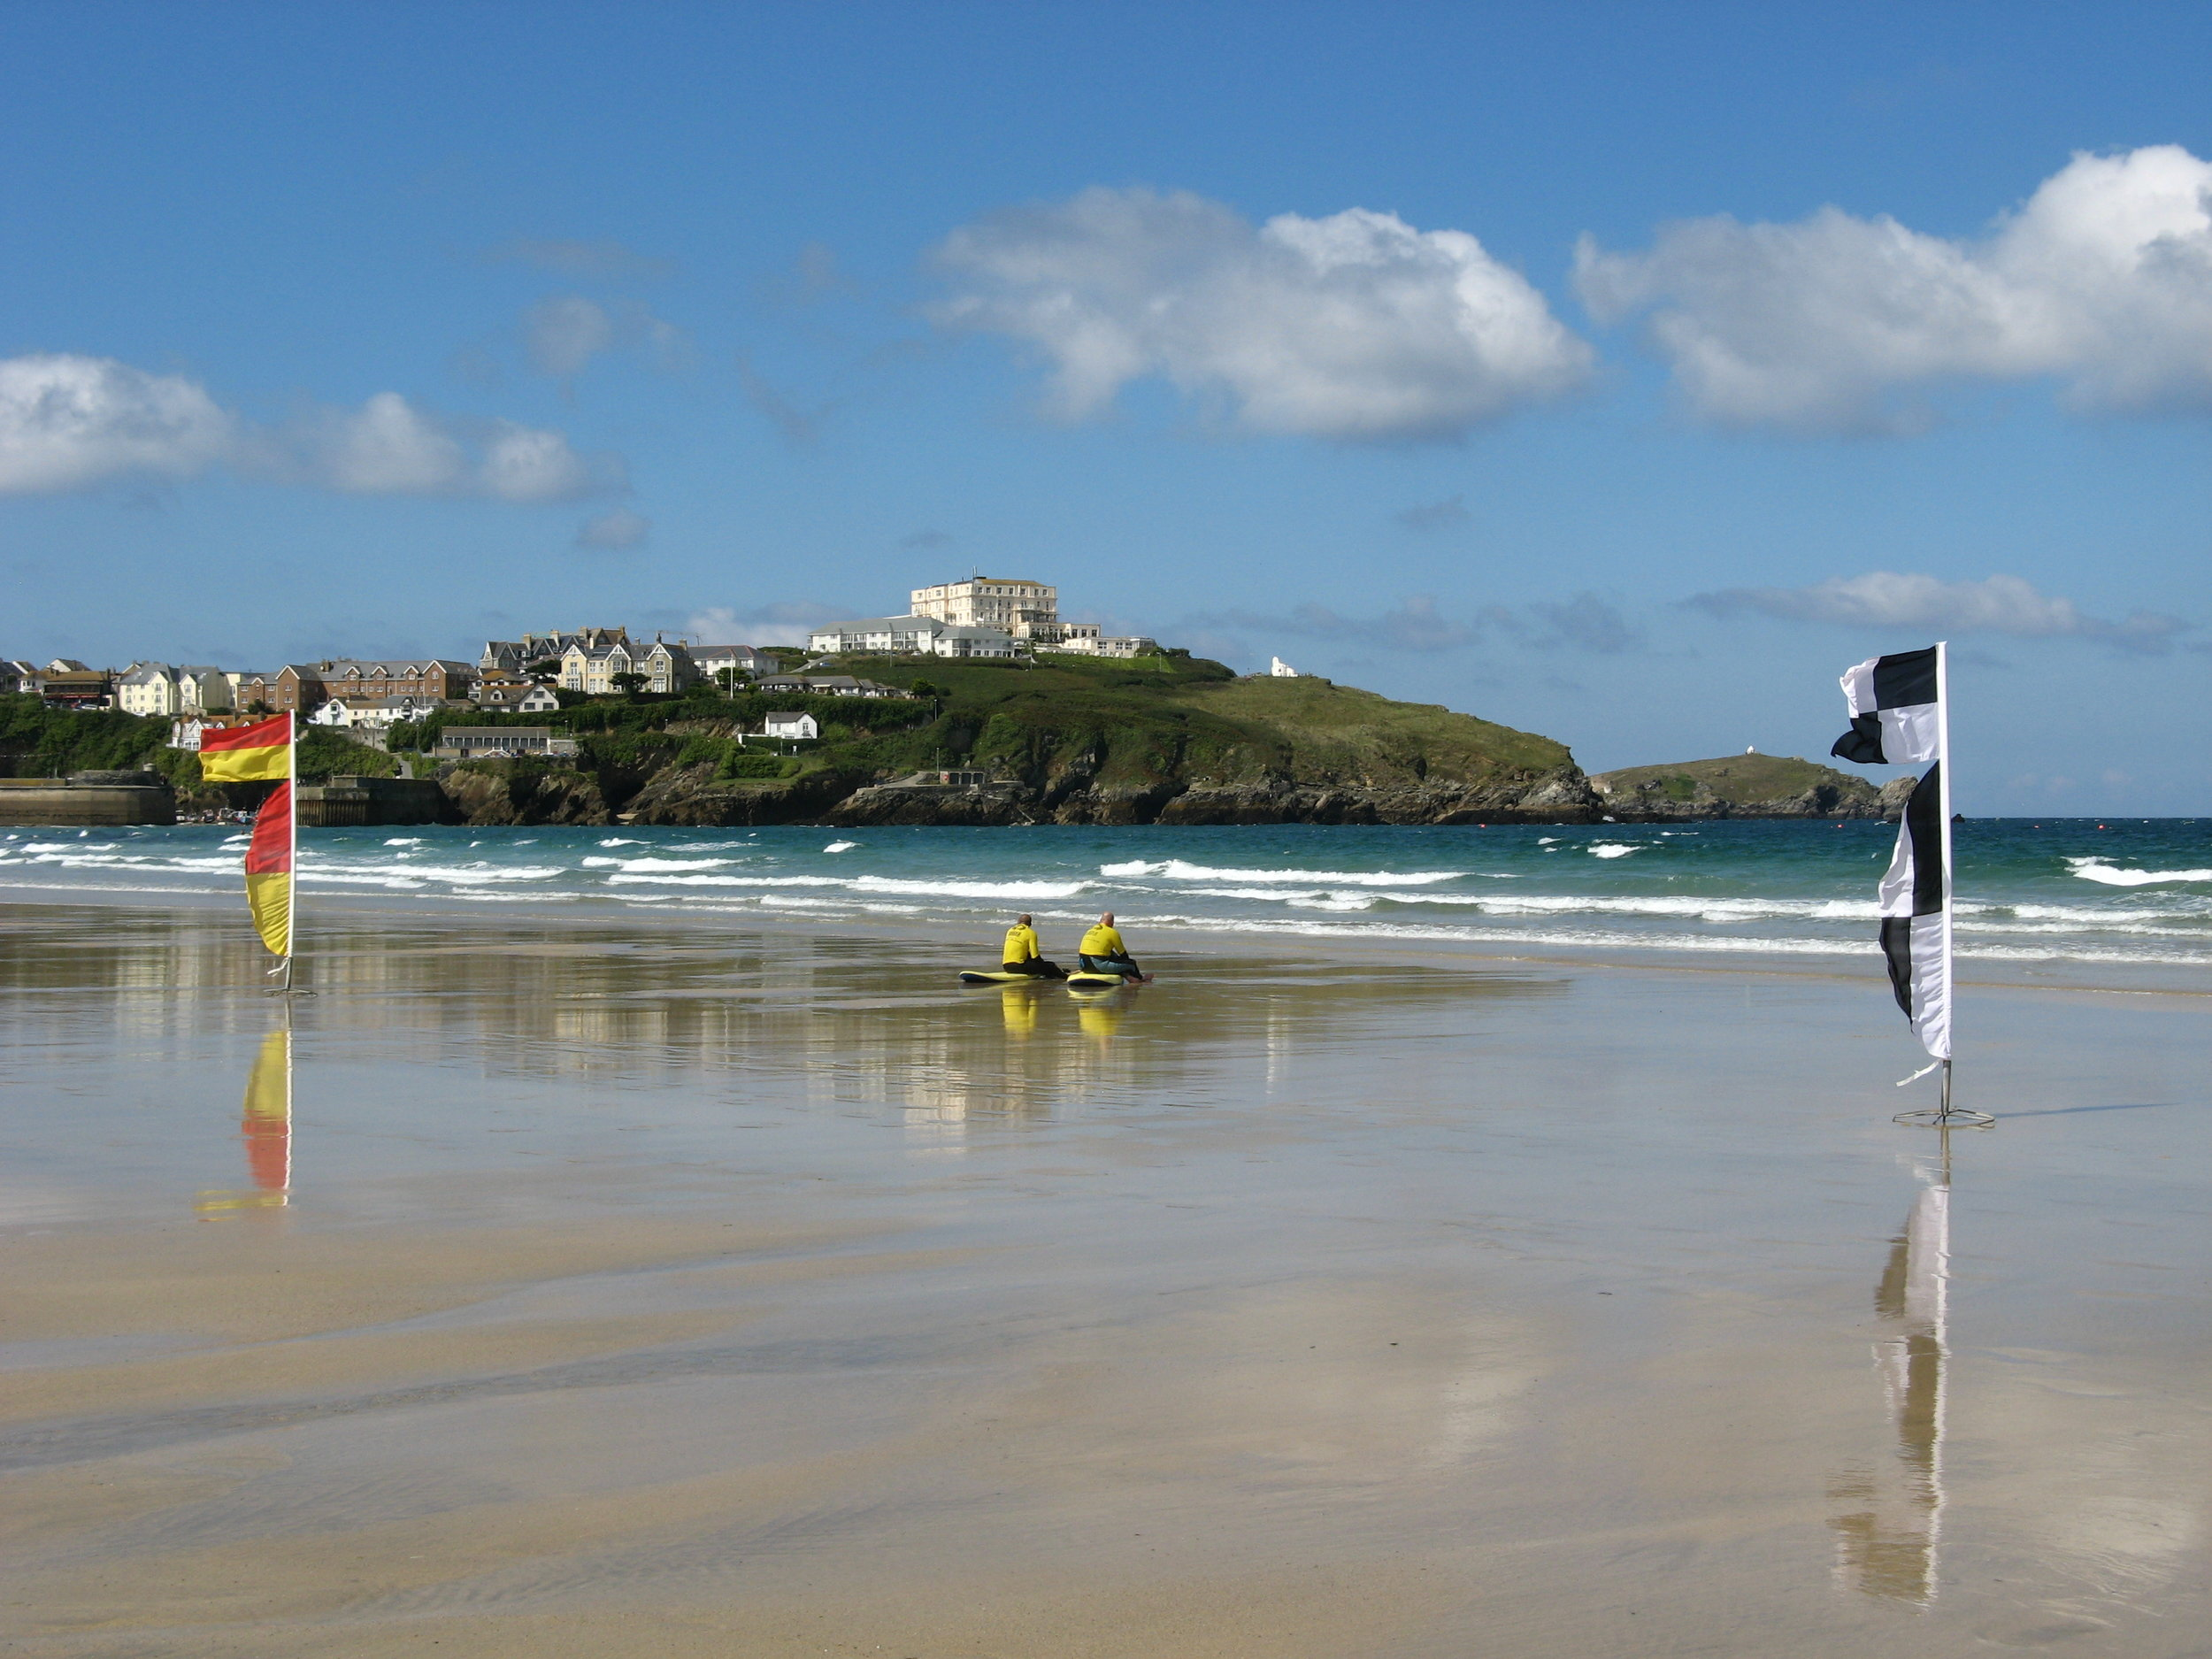 115 JQ28 Atlantic_Hotel,_Newquay,_and_headland_from_Tolcarne_Beach.jpg